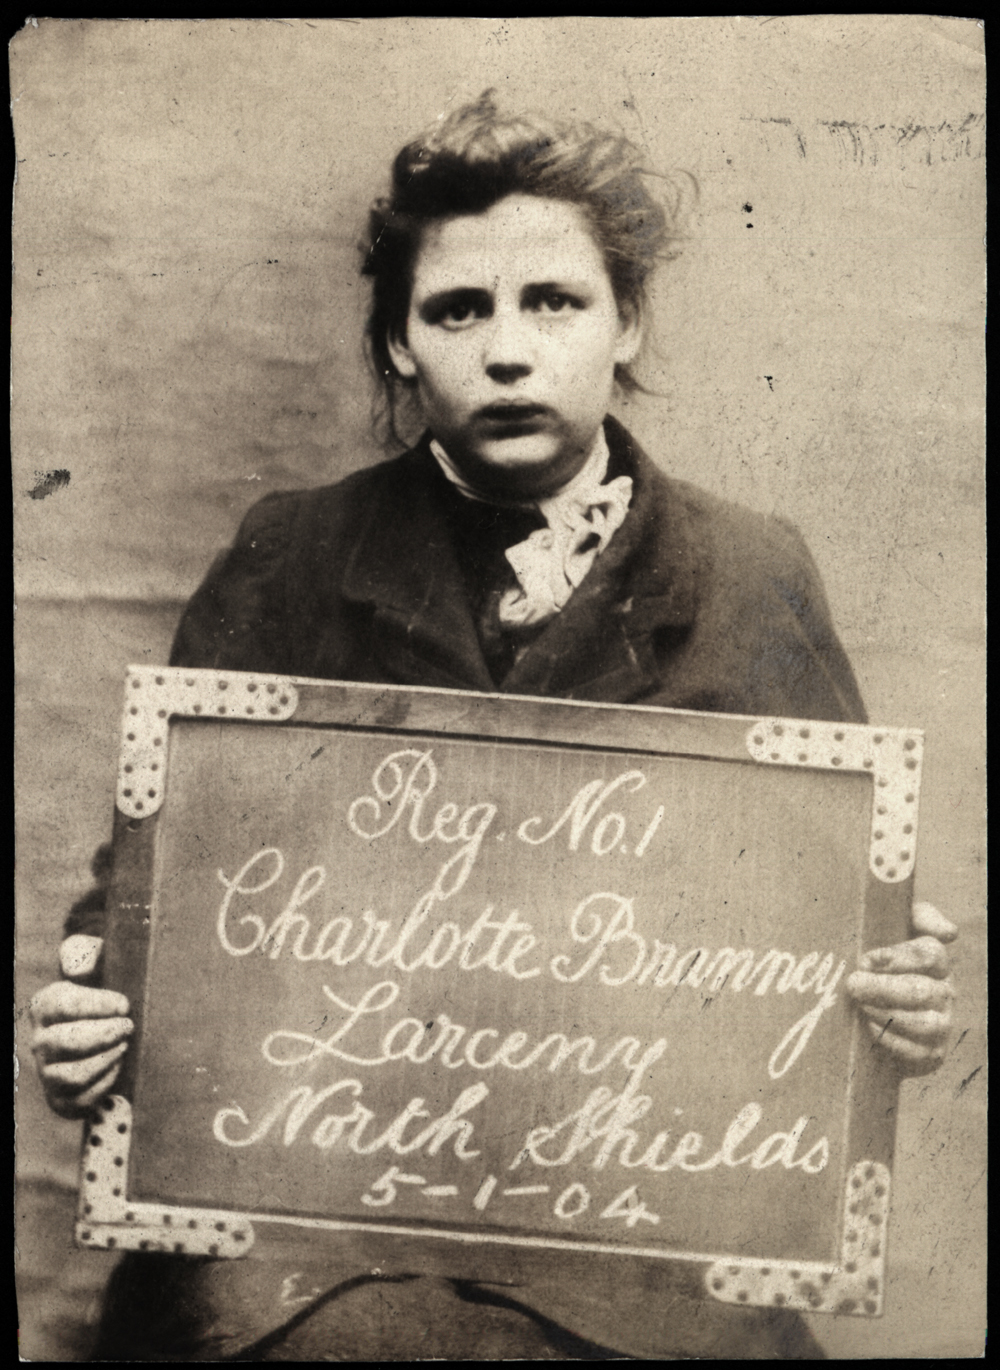 Charlotte Branney arrested for larceny at North Shields Police Station on 5th January 1904. Photo via Tyne & Wear Archives & Museums.